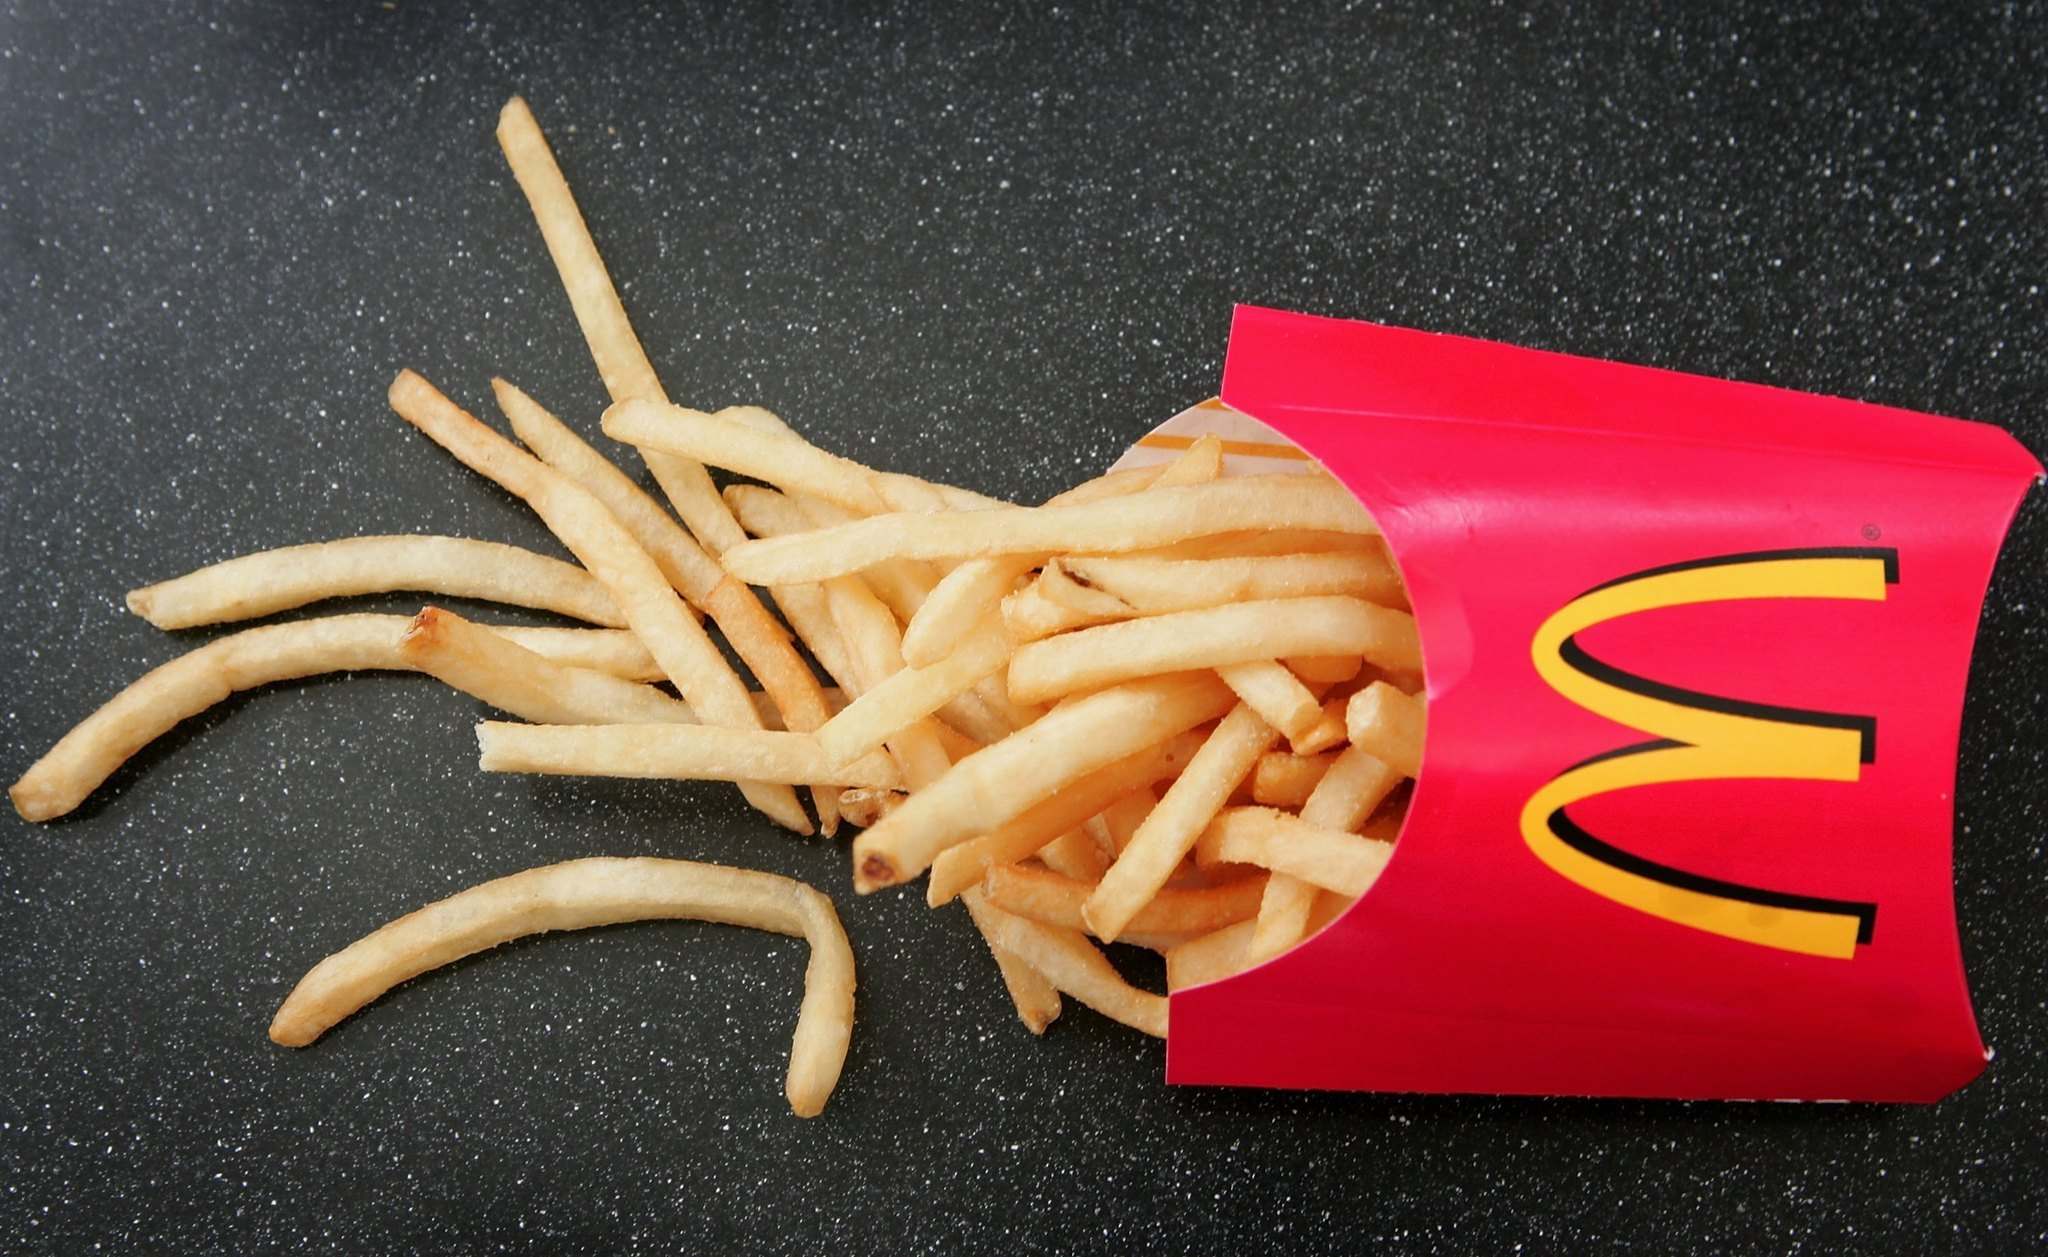 The Scary Truth Behind McDonald's French Fries